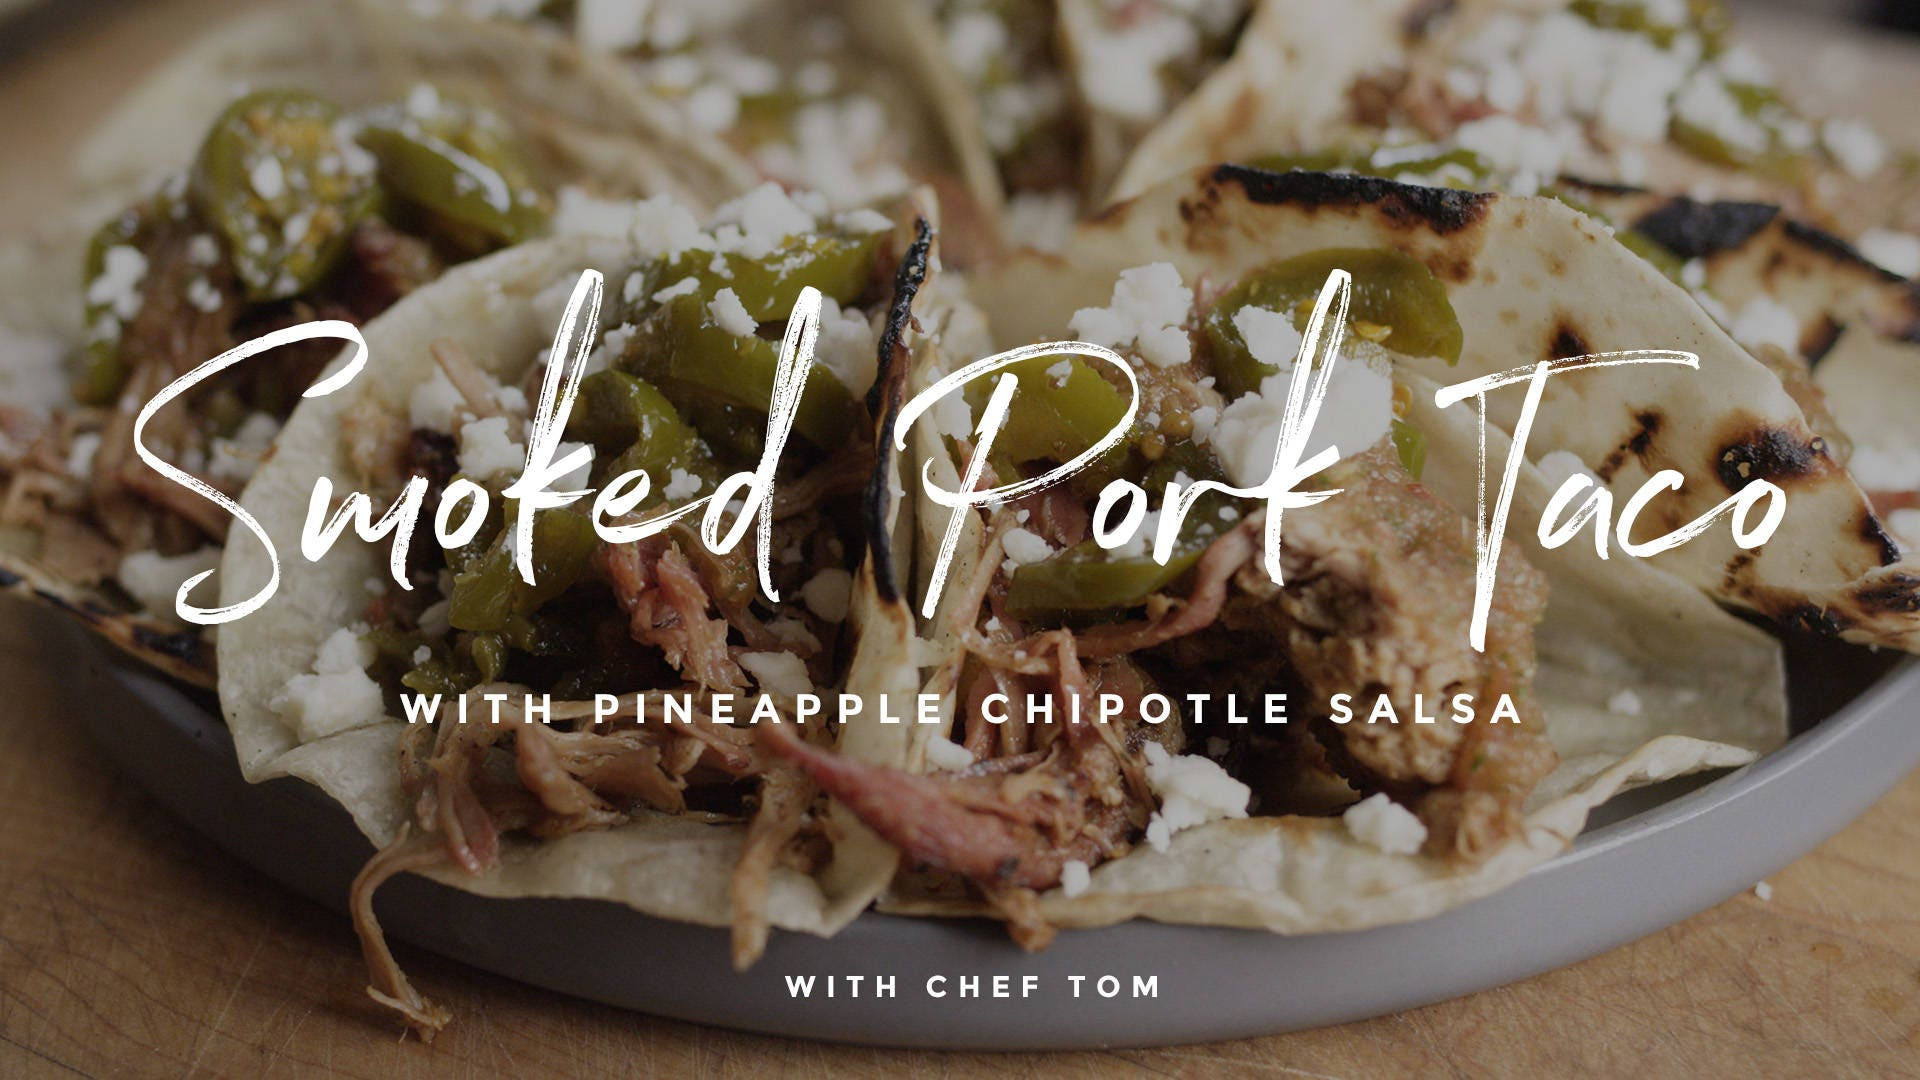 How to make Smoked Pork Tacos with Pineapple Chipotle Salsa